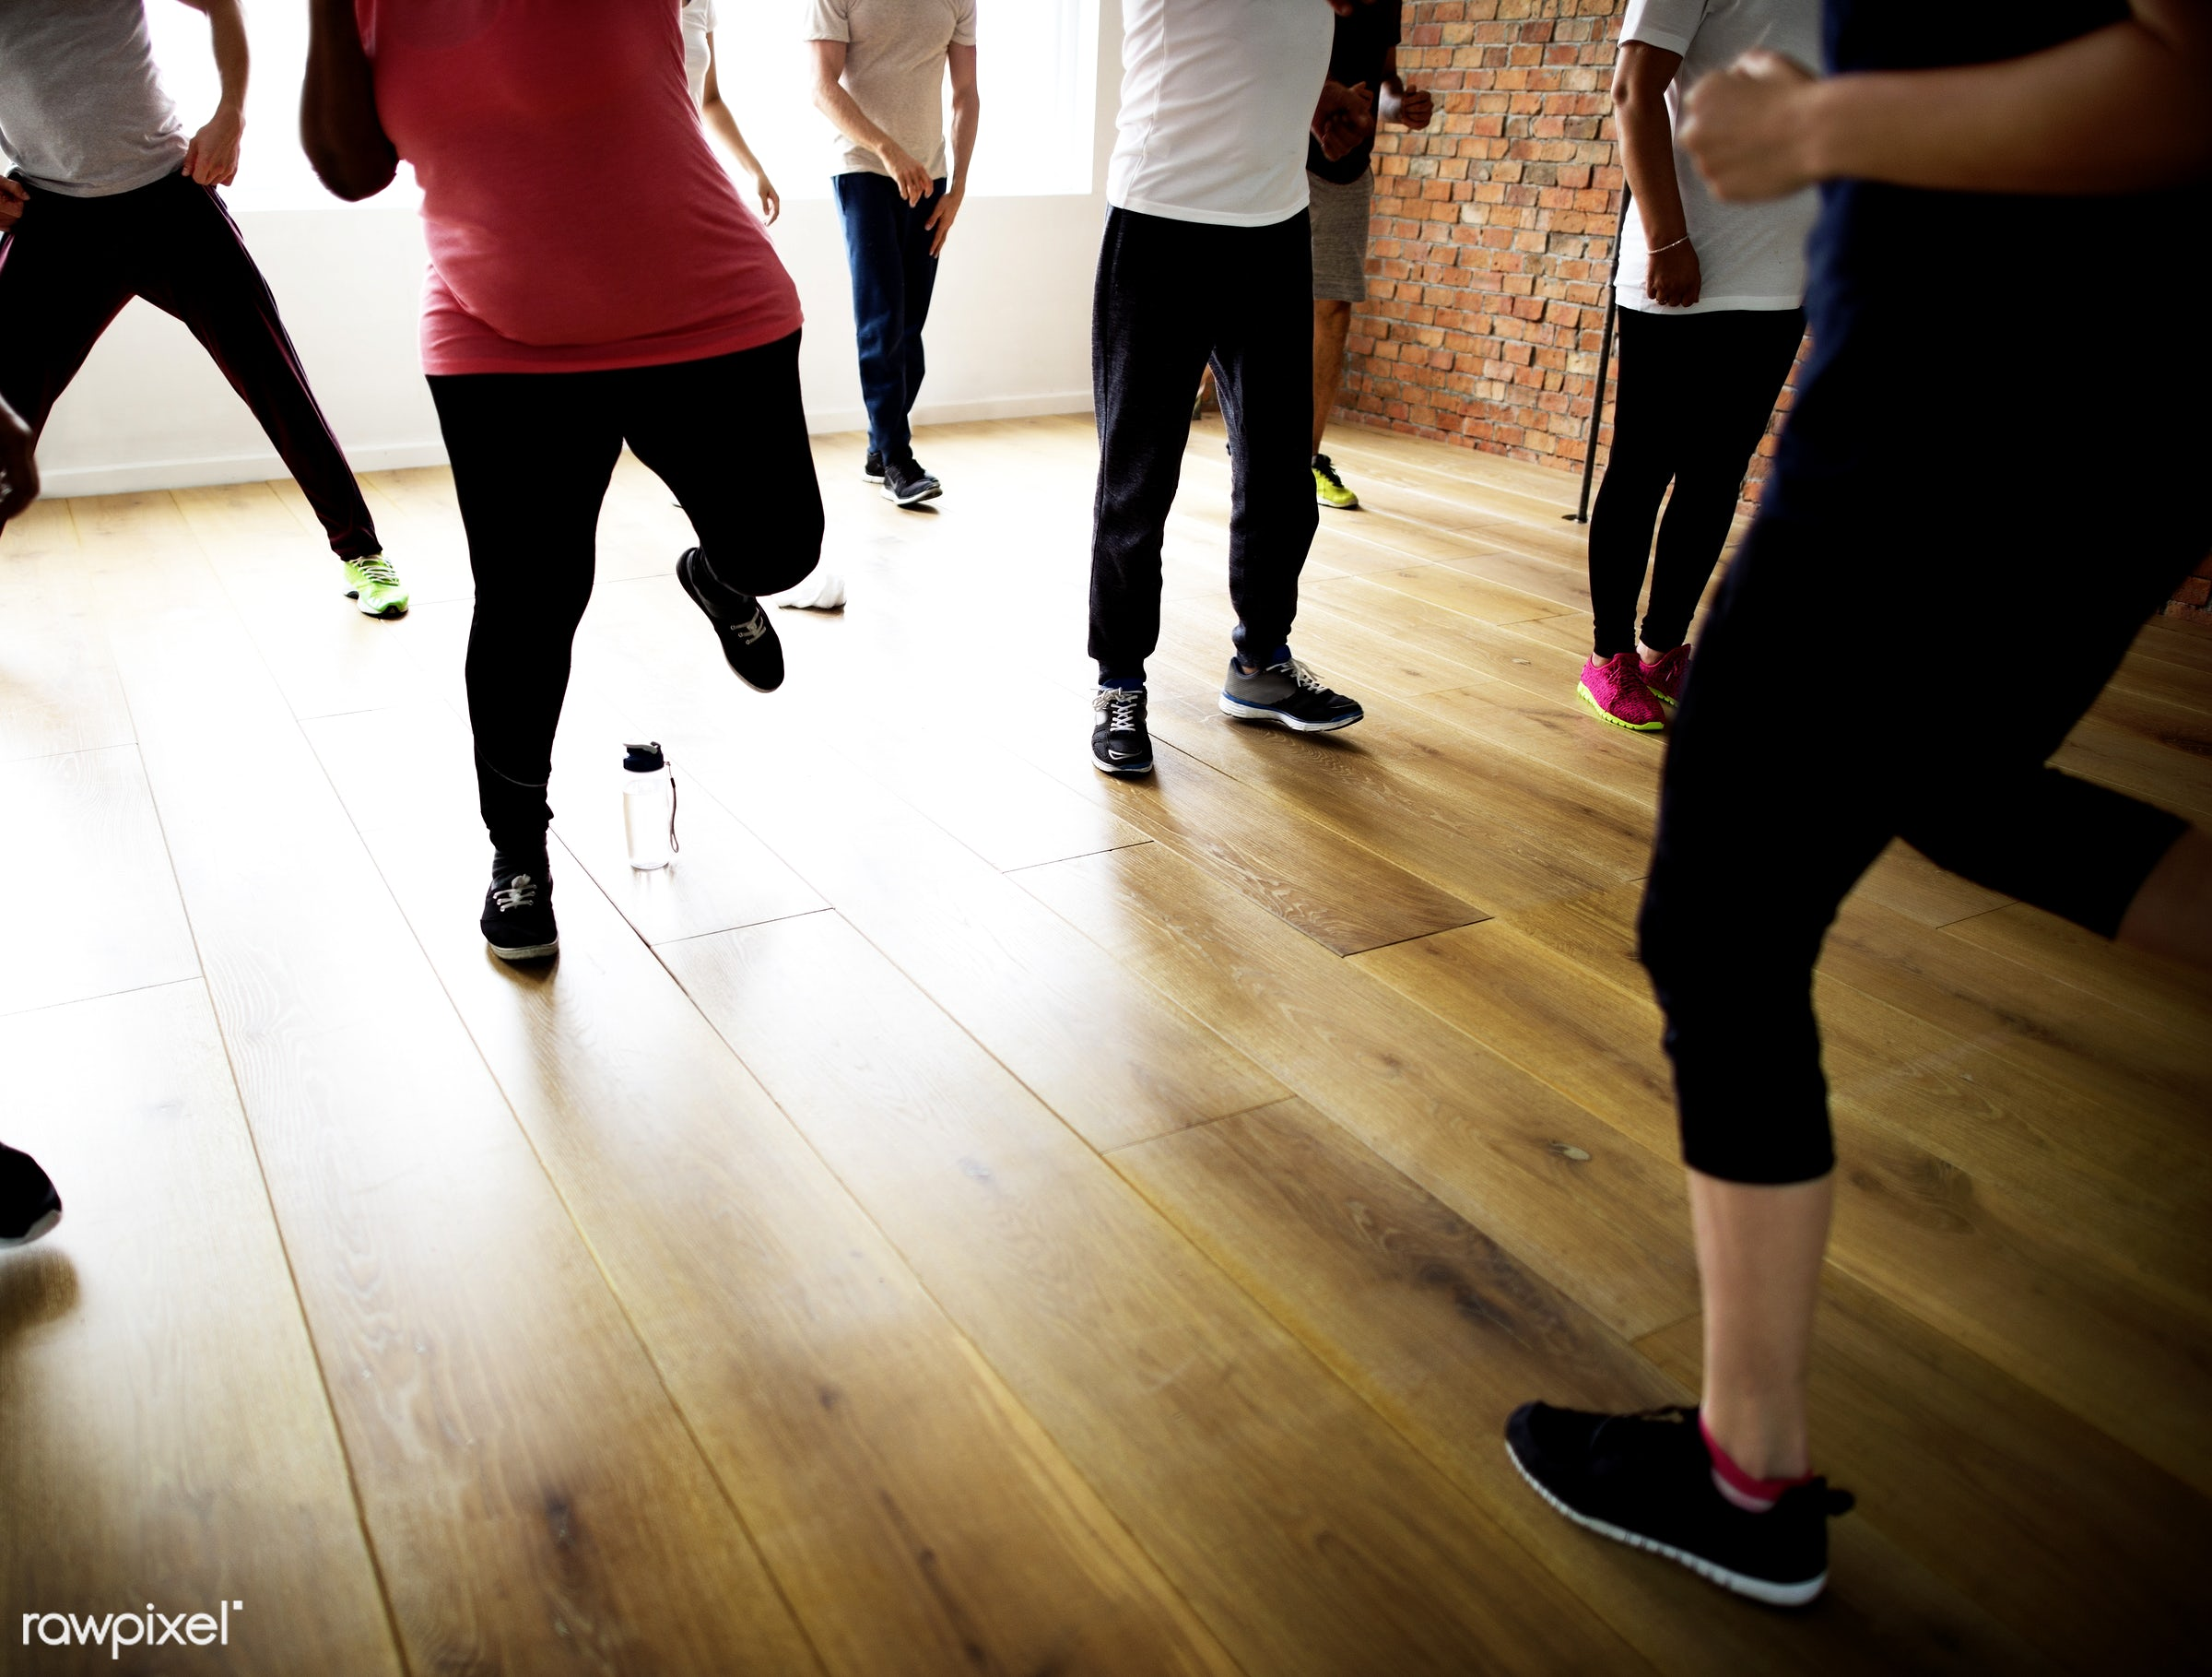 respiration, physical, diverse, relax, variation, recreation, stretching, people, together, practicing, lifestyle, gym,...